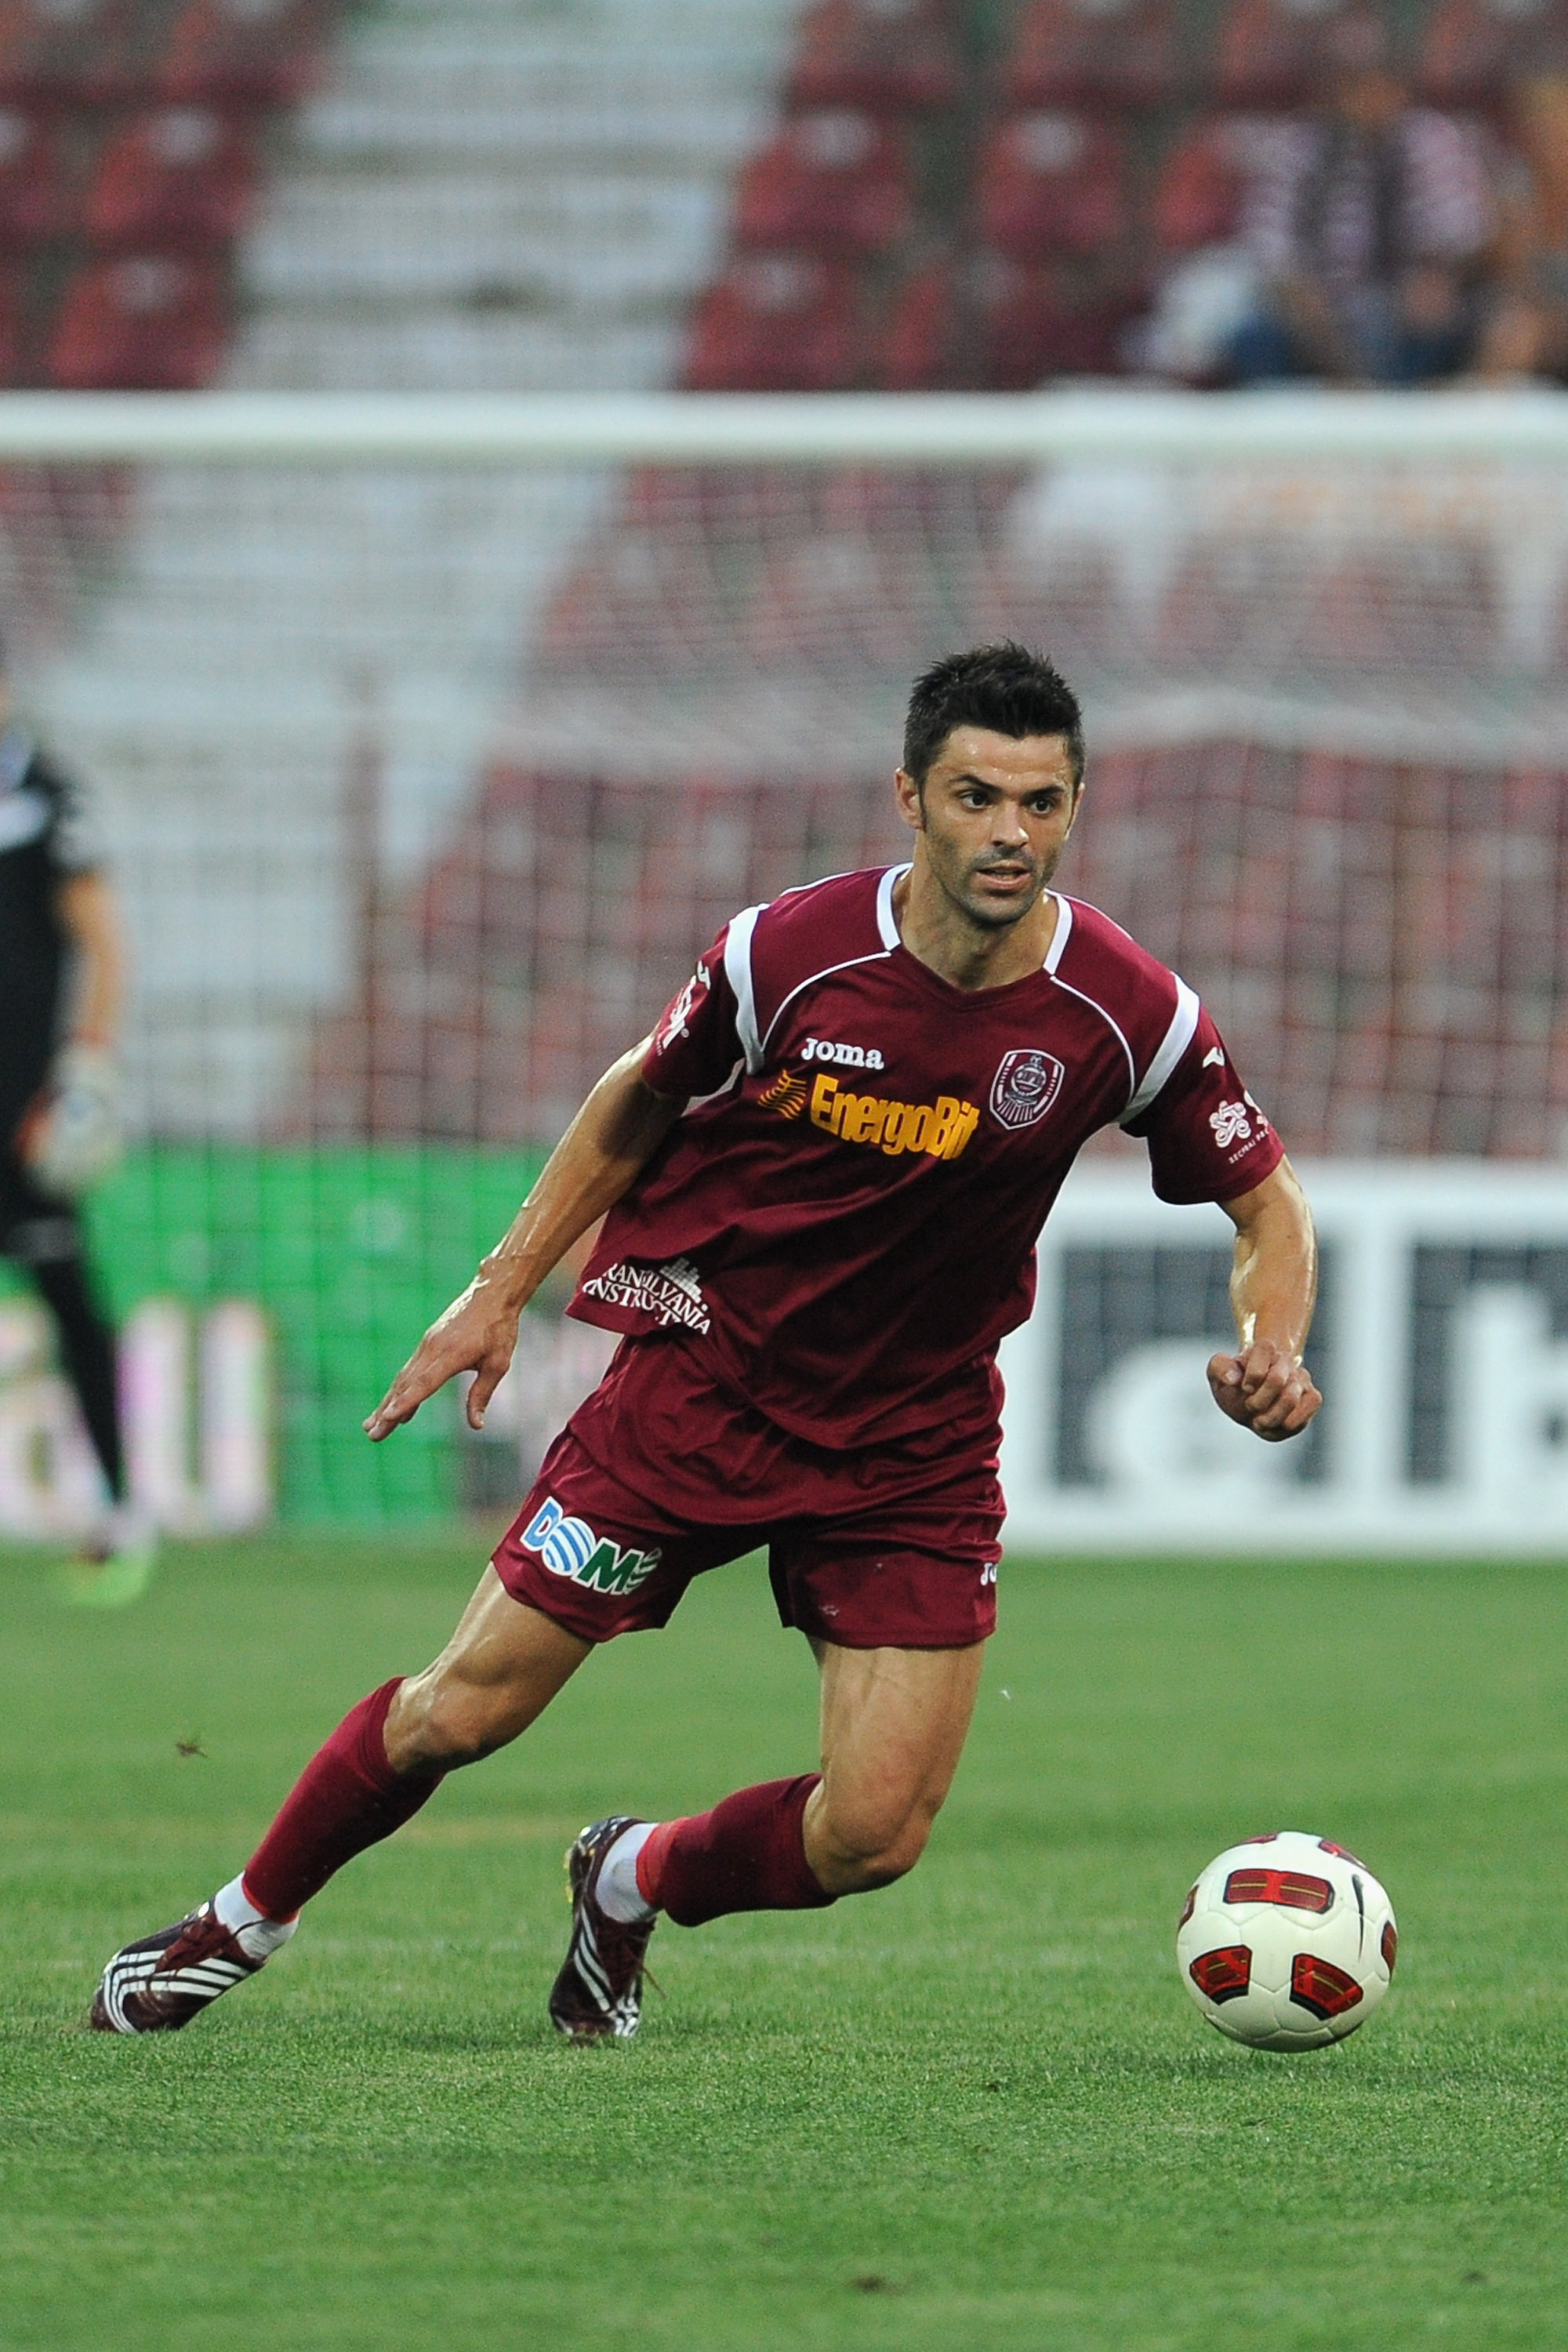 CLUJ-NAPOCA, ROMANIA - AUGUST 13:  Dani of CFR 1907 Cluj in action during the Liga 1 match between CFR 1907 Cluj and Astra Ploiesti at Constantin Radulescu Stadium on August 13, 2010 in Cluj-Napoca, Romania.  (Photo by Valerio Pennicino/Getty Images)